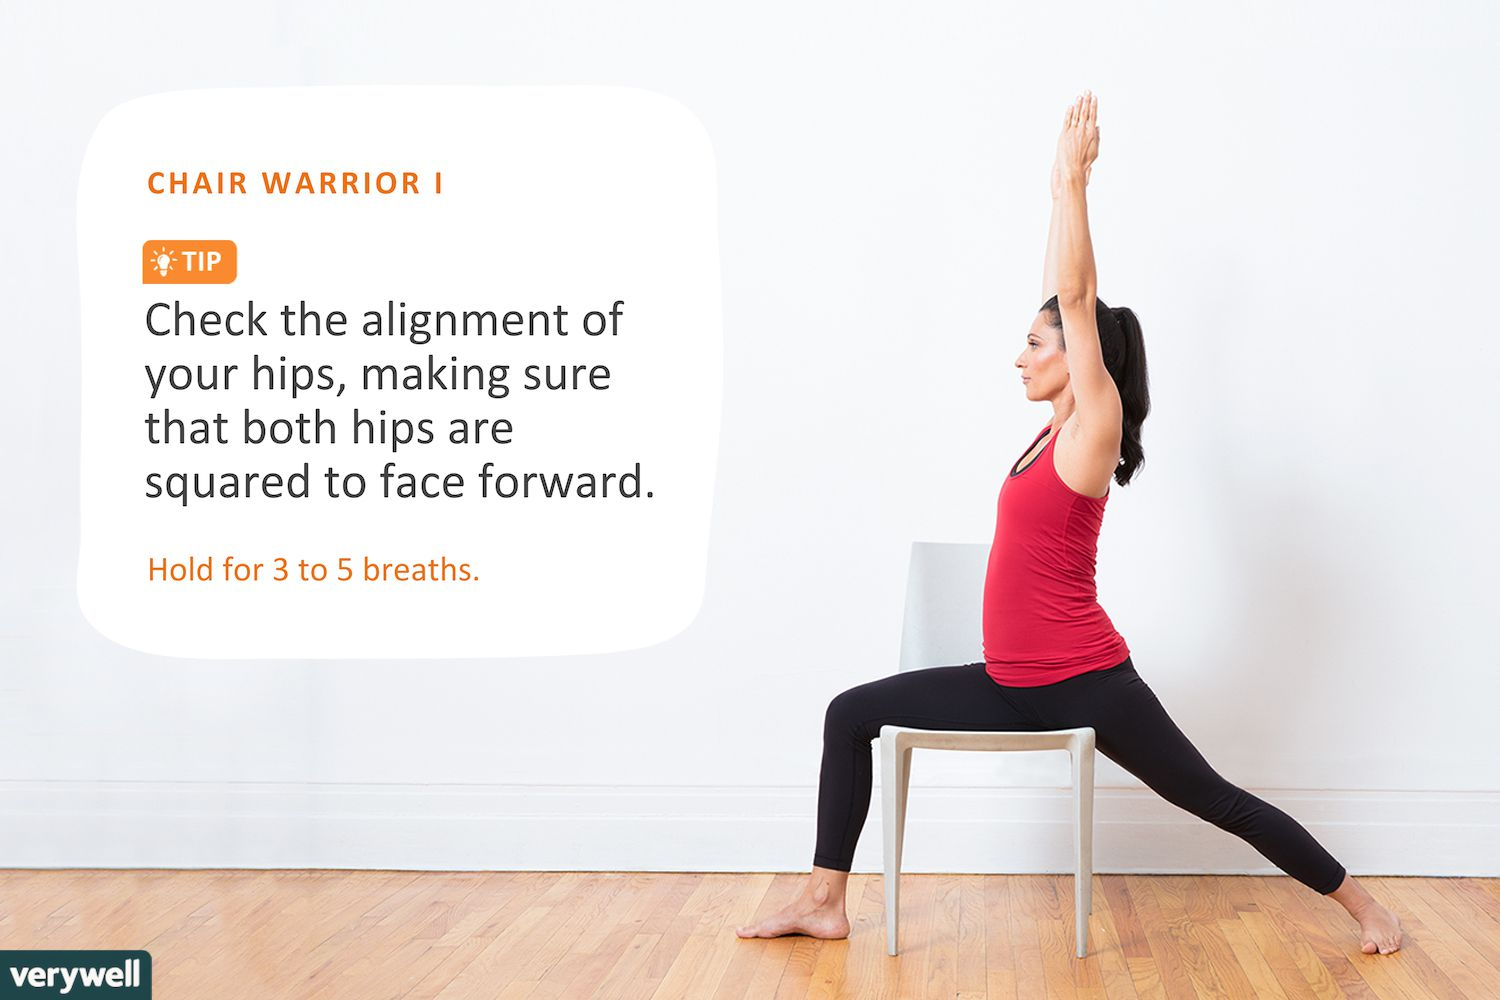 yoga chair pose youtube 10 poses for home practice woman doing warrior